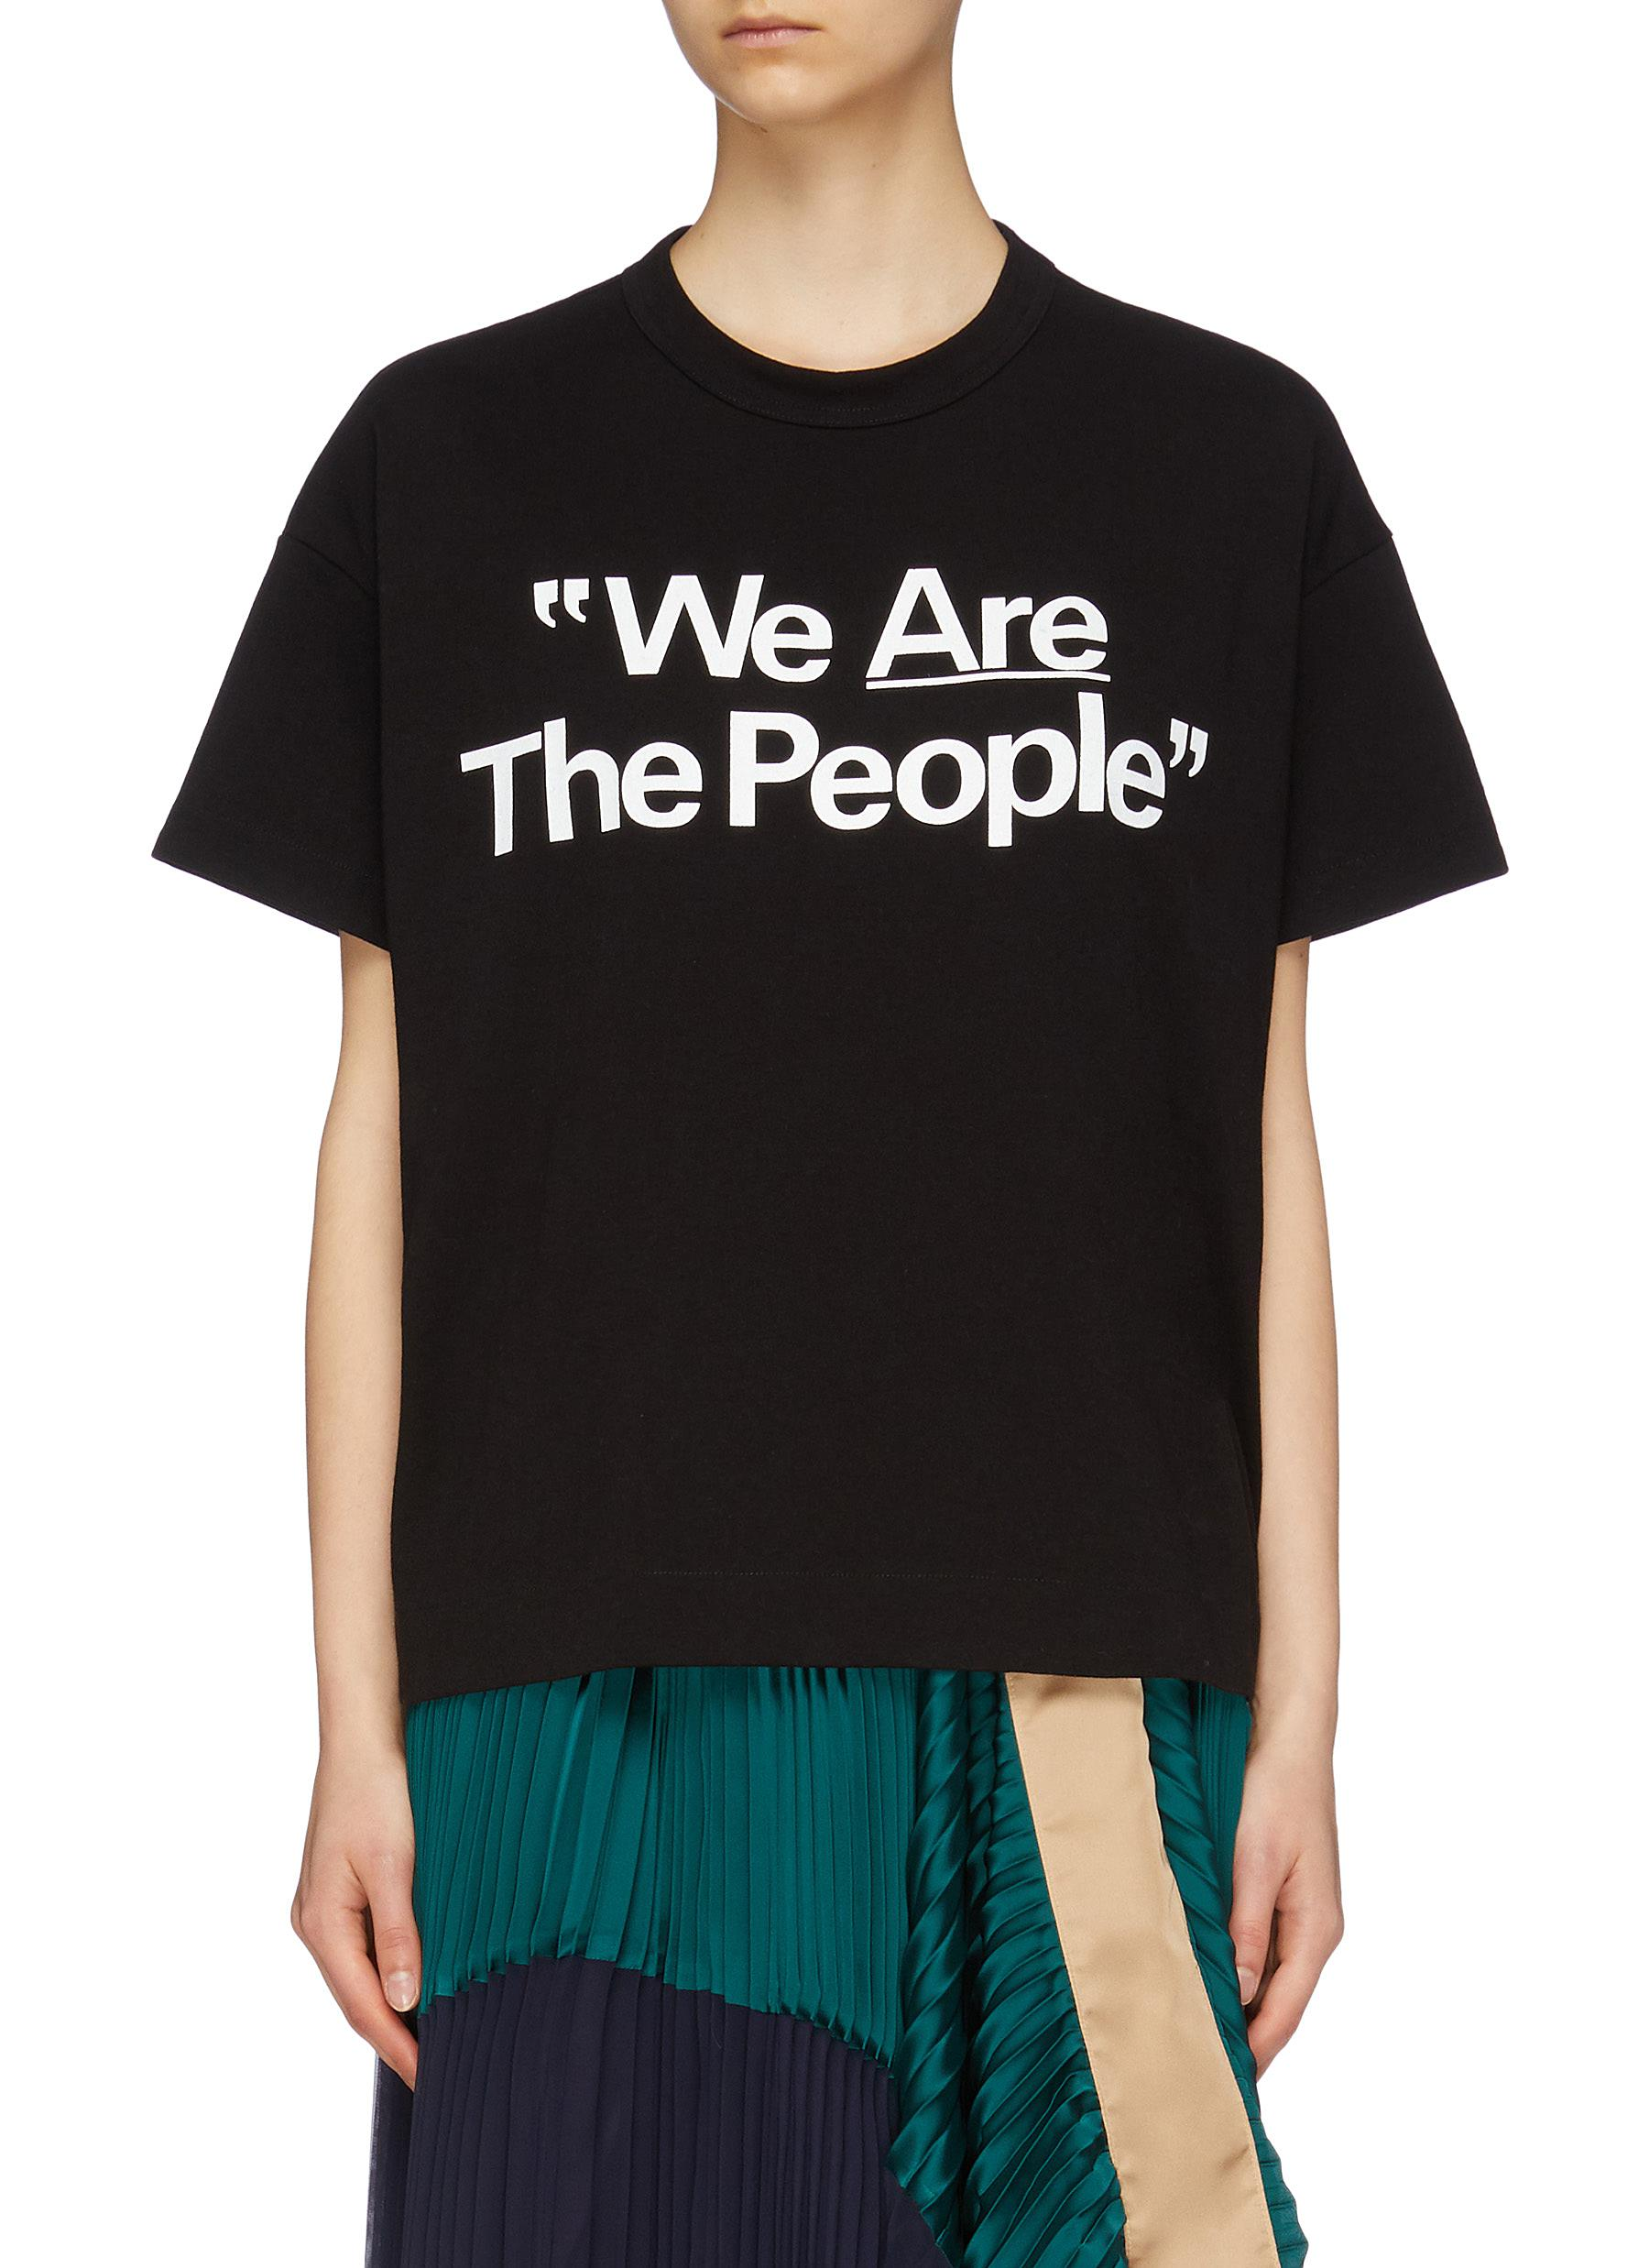 Are Lane The Crawford Sacai'we Slogan Print Shirt People' T Women tohrdxQCBs